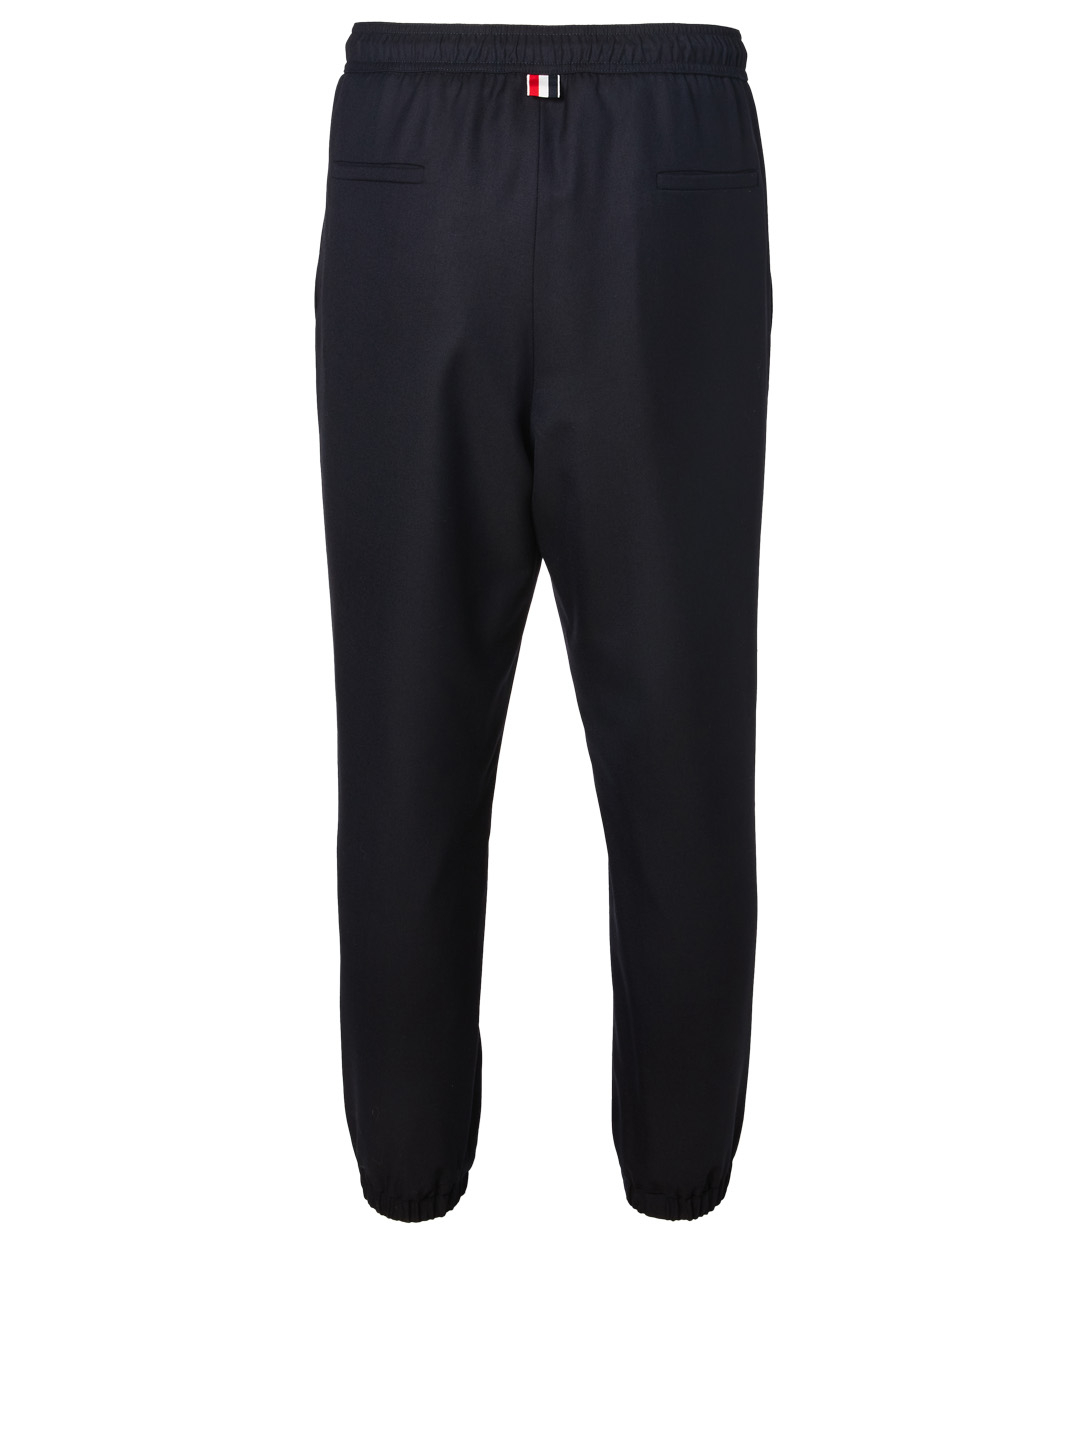 THOM BROWNE Wool Twill Track Pants Men's Blue